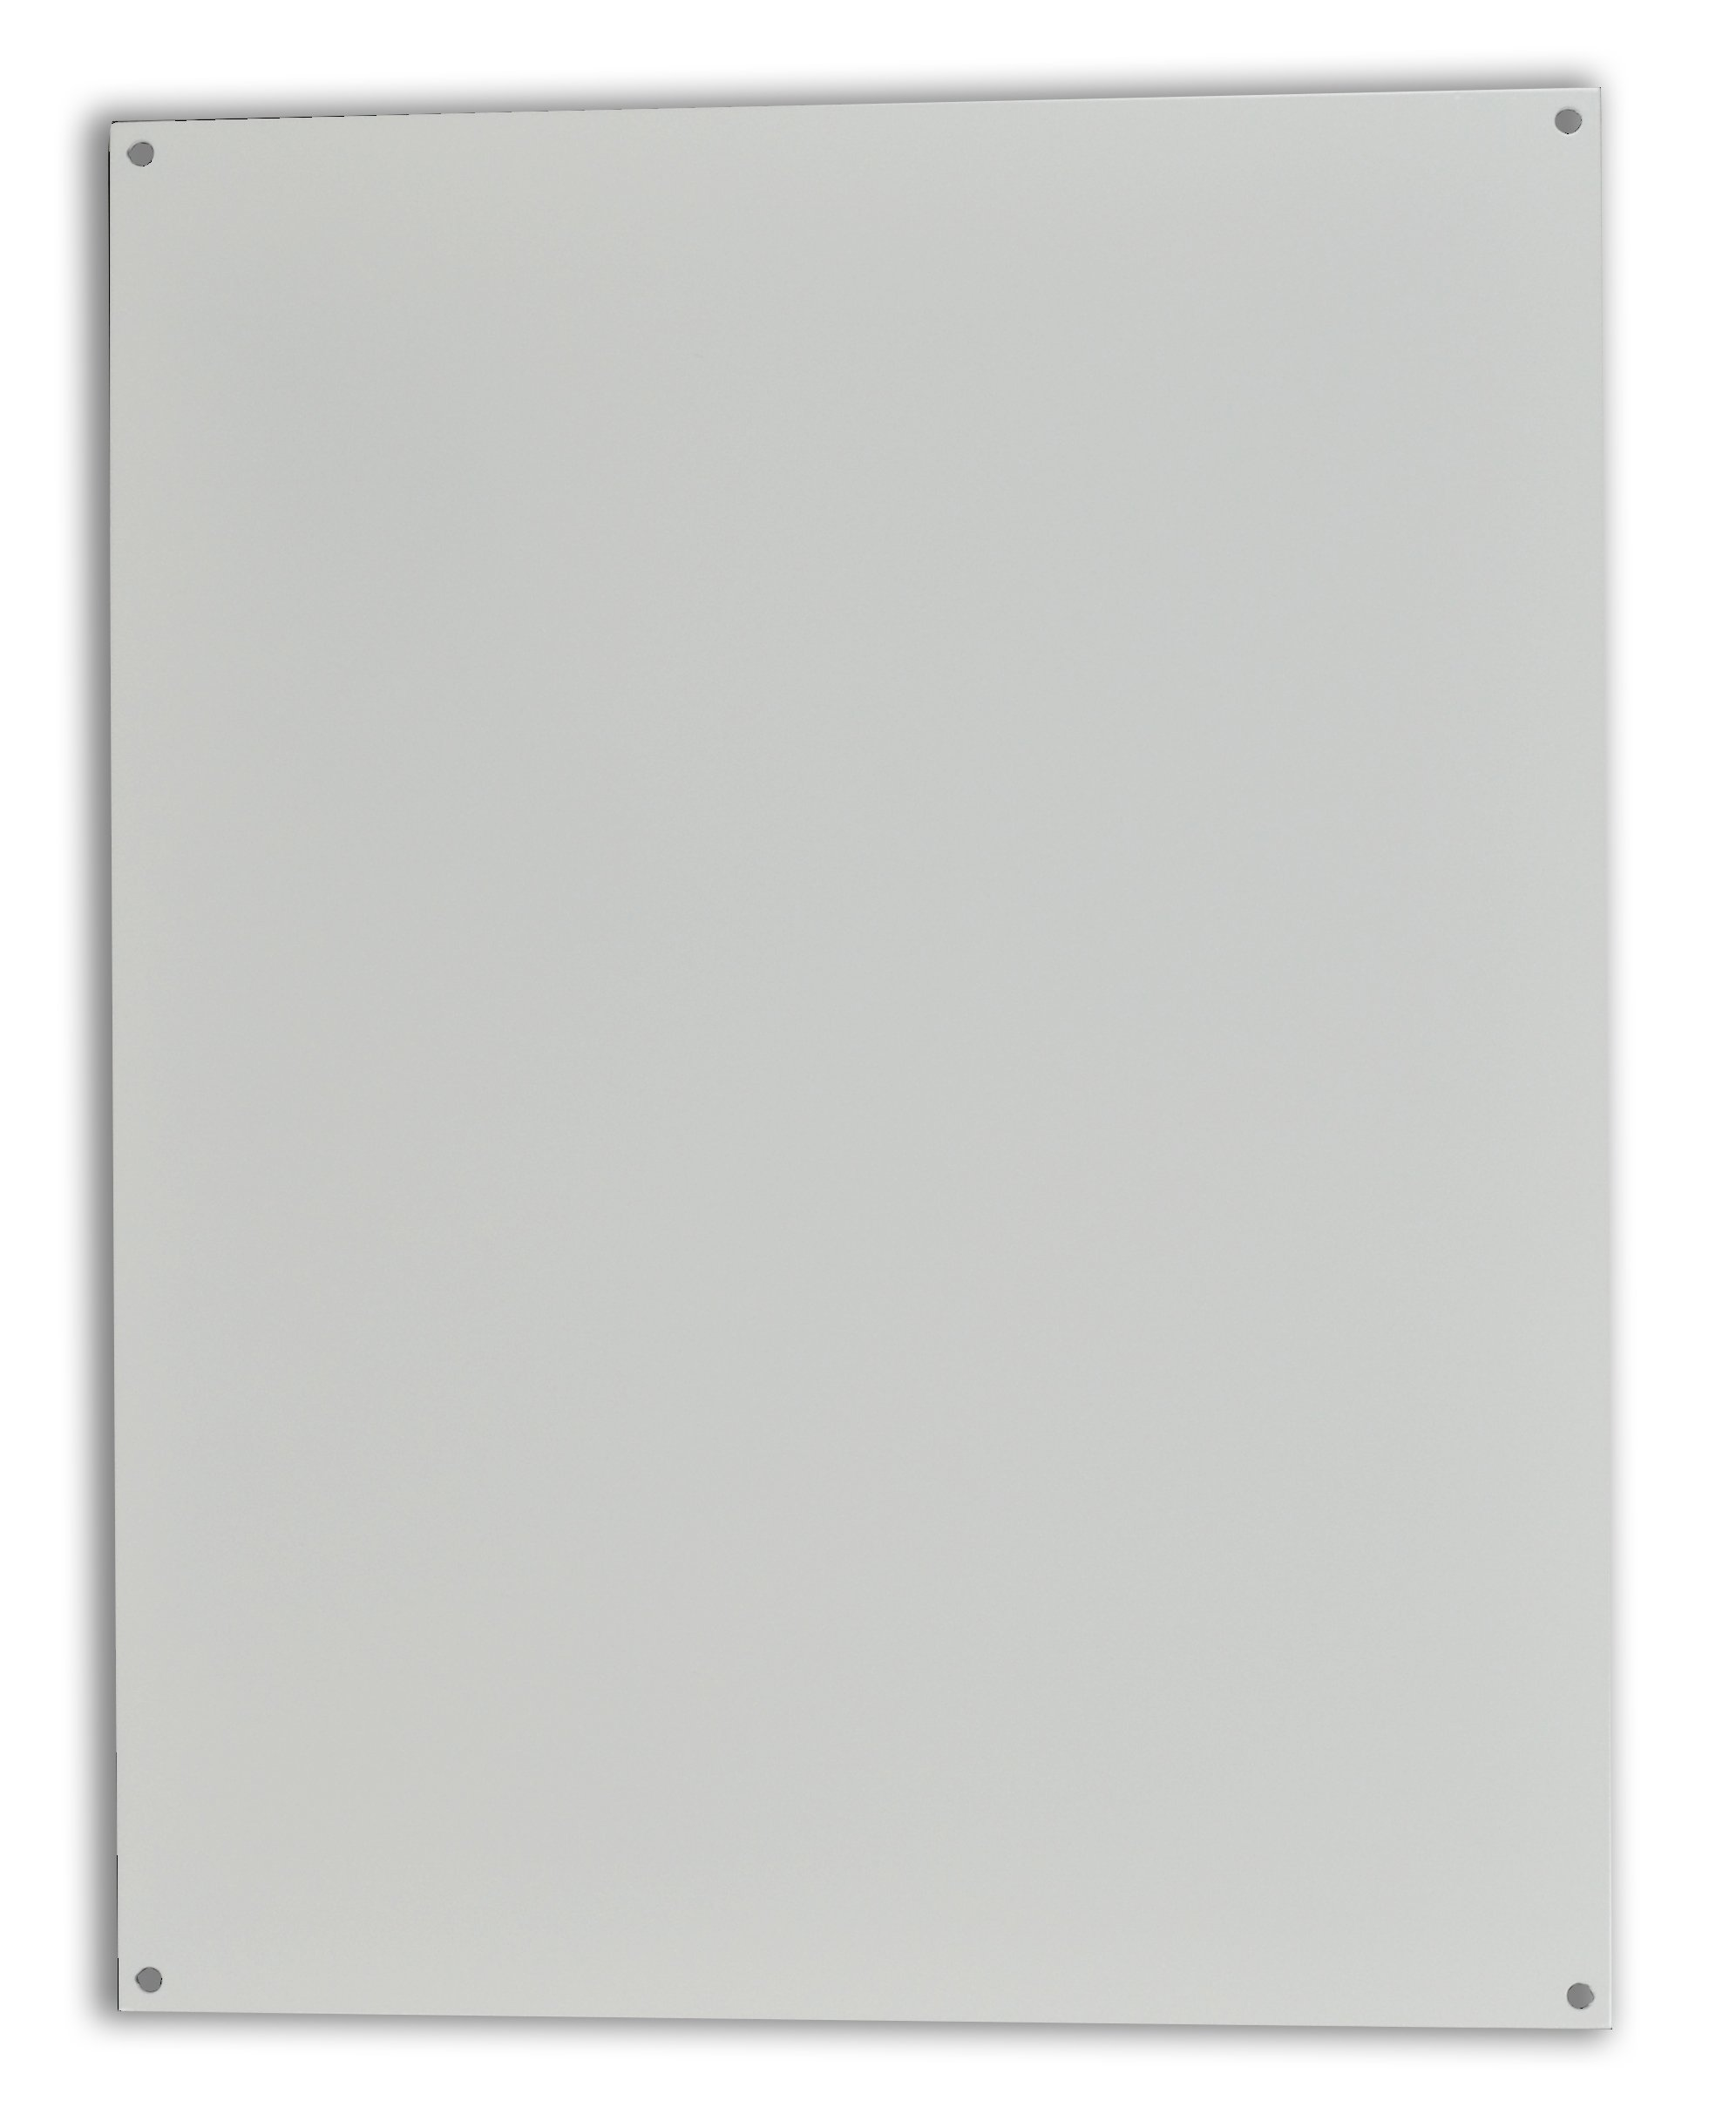 Allied Moulded P206 White Painted Carbon Steel Back Panel for AM Series or Ultraline Series Fiberglass Enclosures